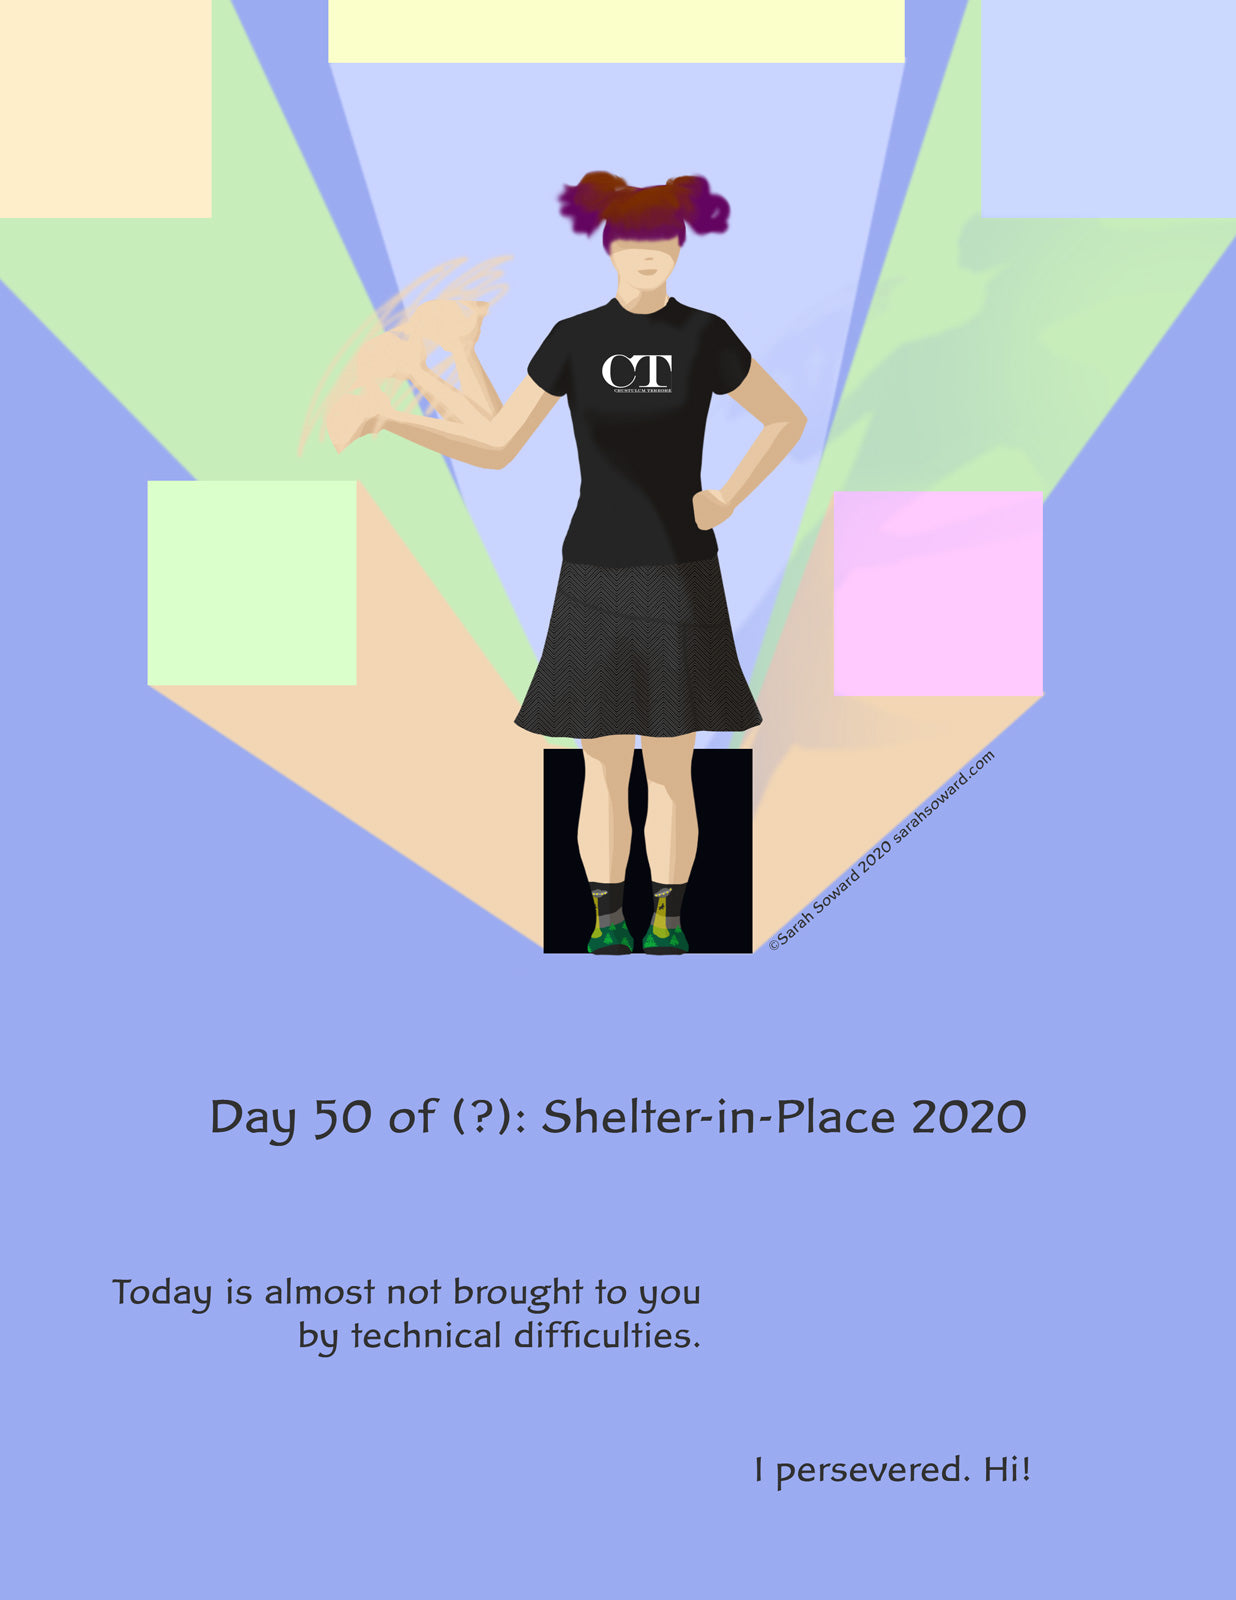 A woman with her hairpin pigtails waves in the middle of geometric shapes that could be a city or a trap or just some blocks of color. It's up to you. The text on the image reads  Today is almost not brought to you by technical difficulties.  I persevered. Hi!